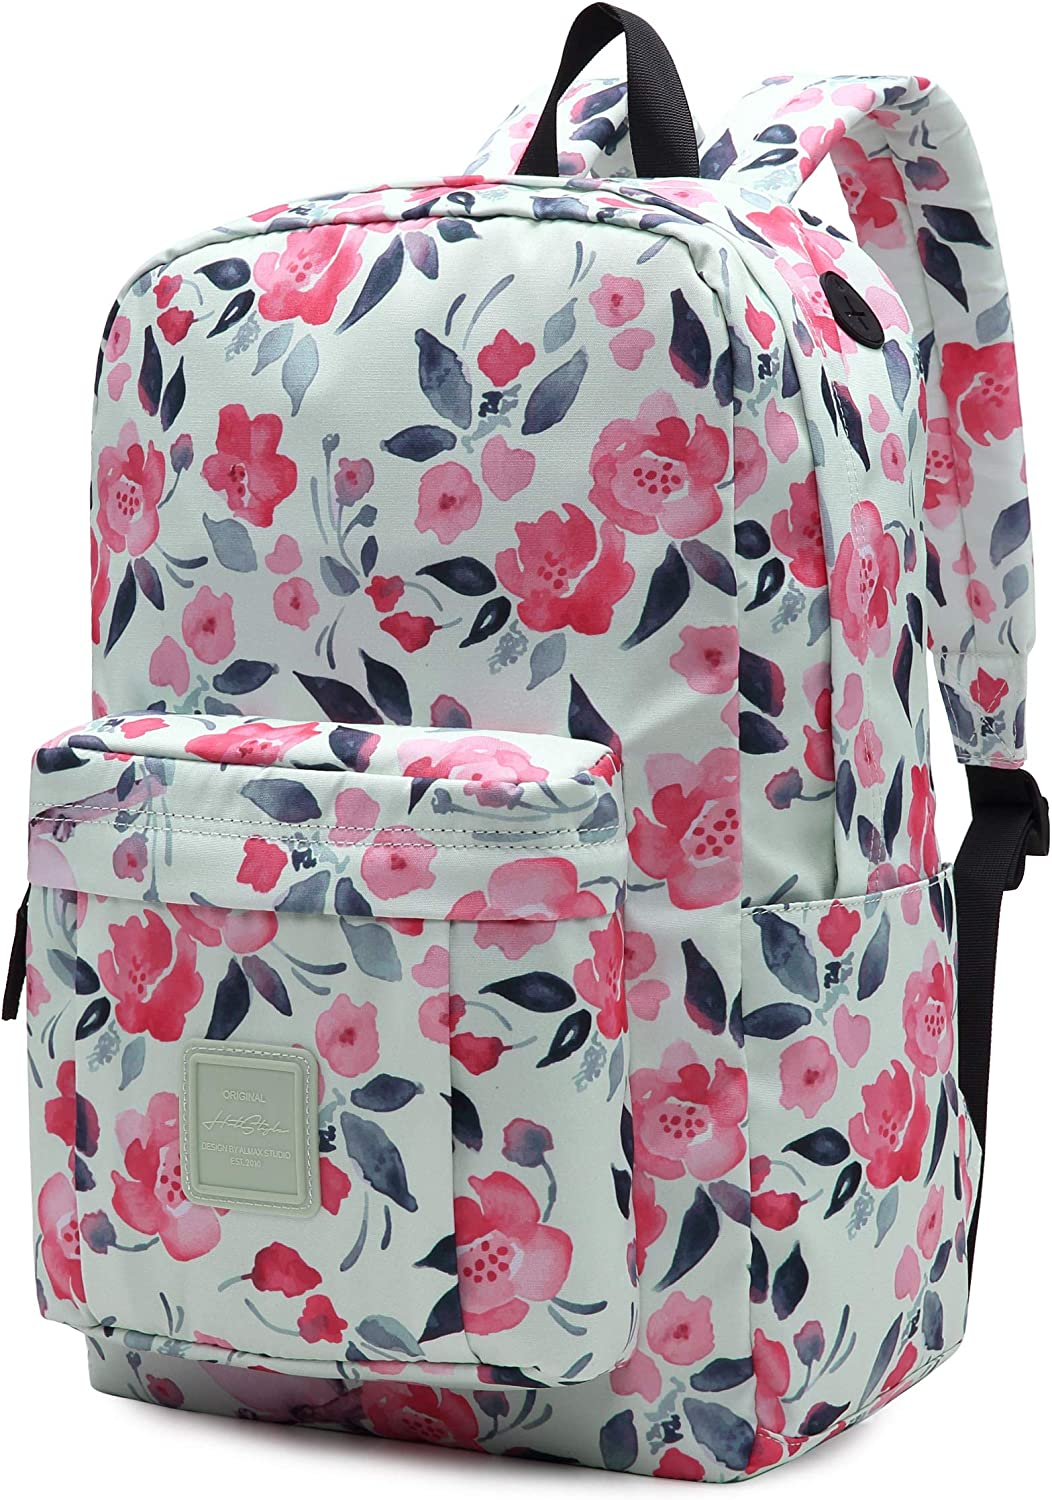 599s Floral School Backpack For Teen Girls, Water resistance & Durable Bookbag Cute for College, Peach Blossom, White